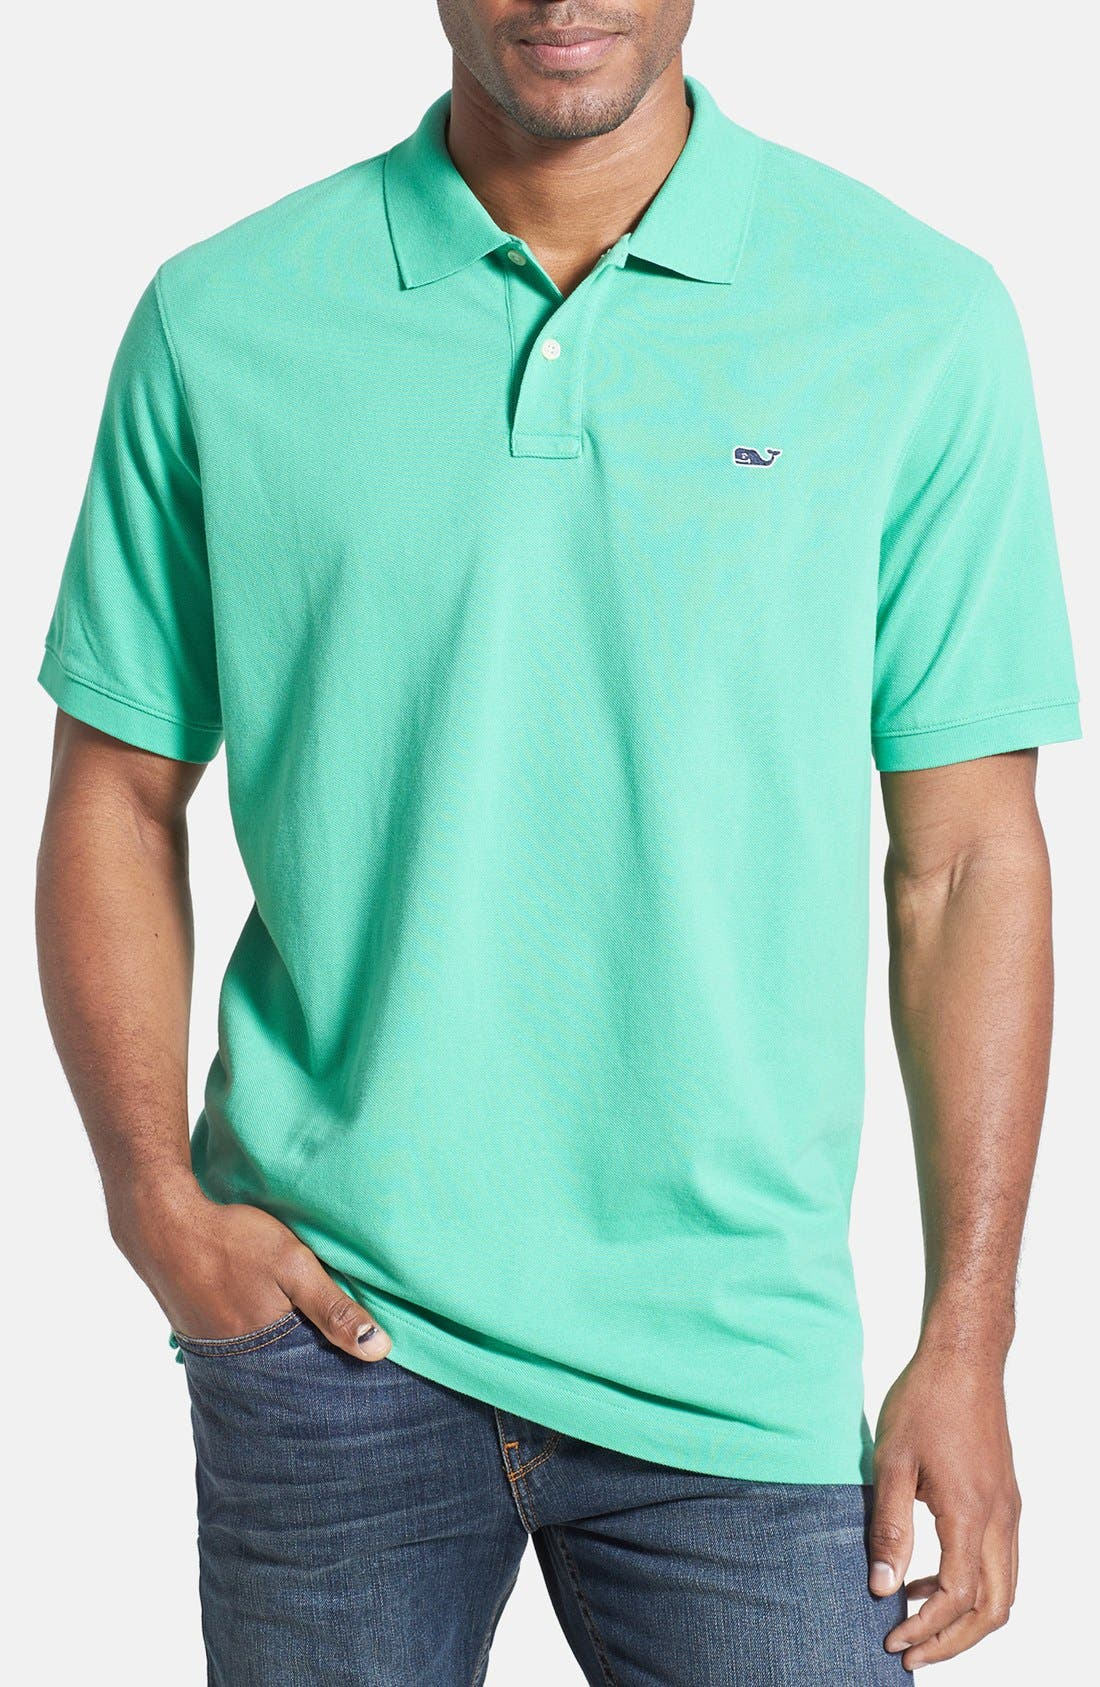 Alternate Image 1 Selected - Vineyard Vines 'Classic' Piqué Knit Polo